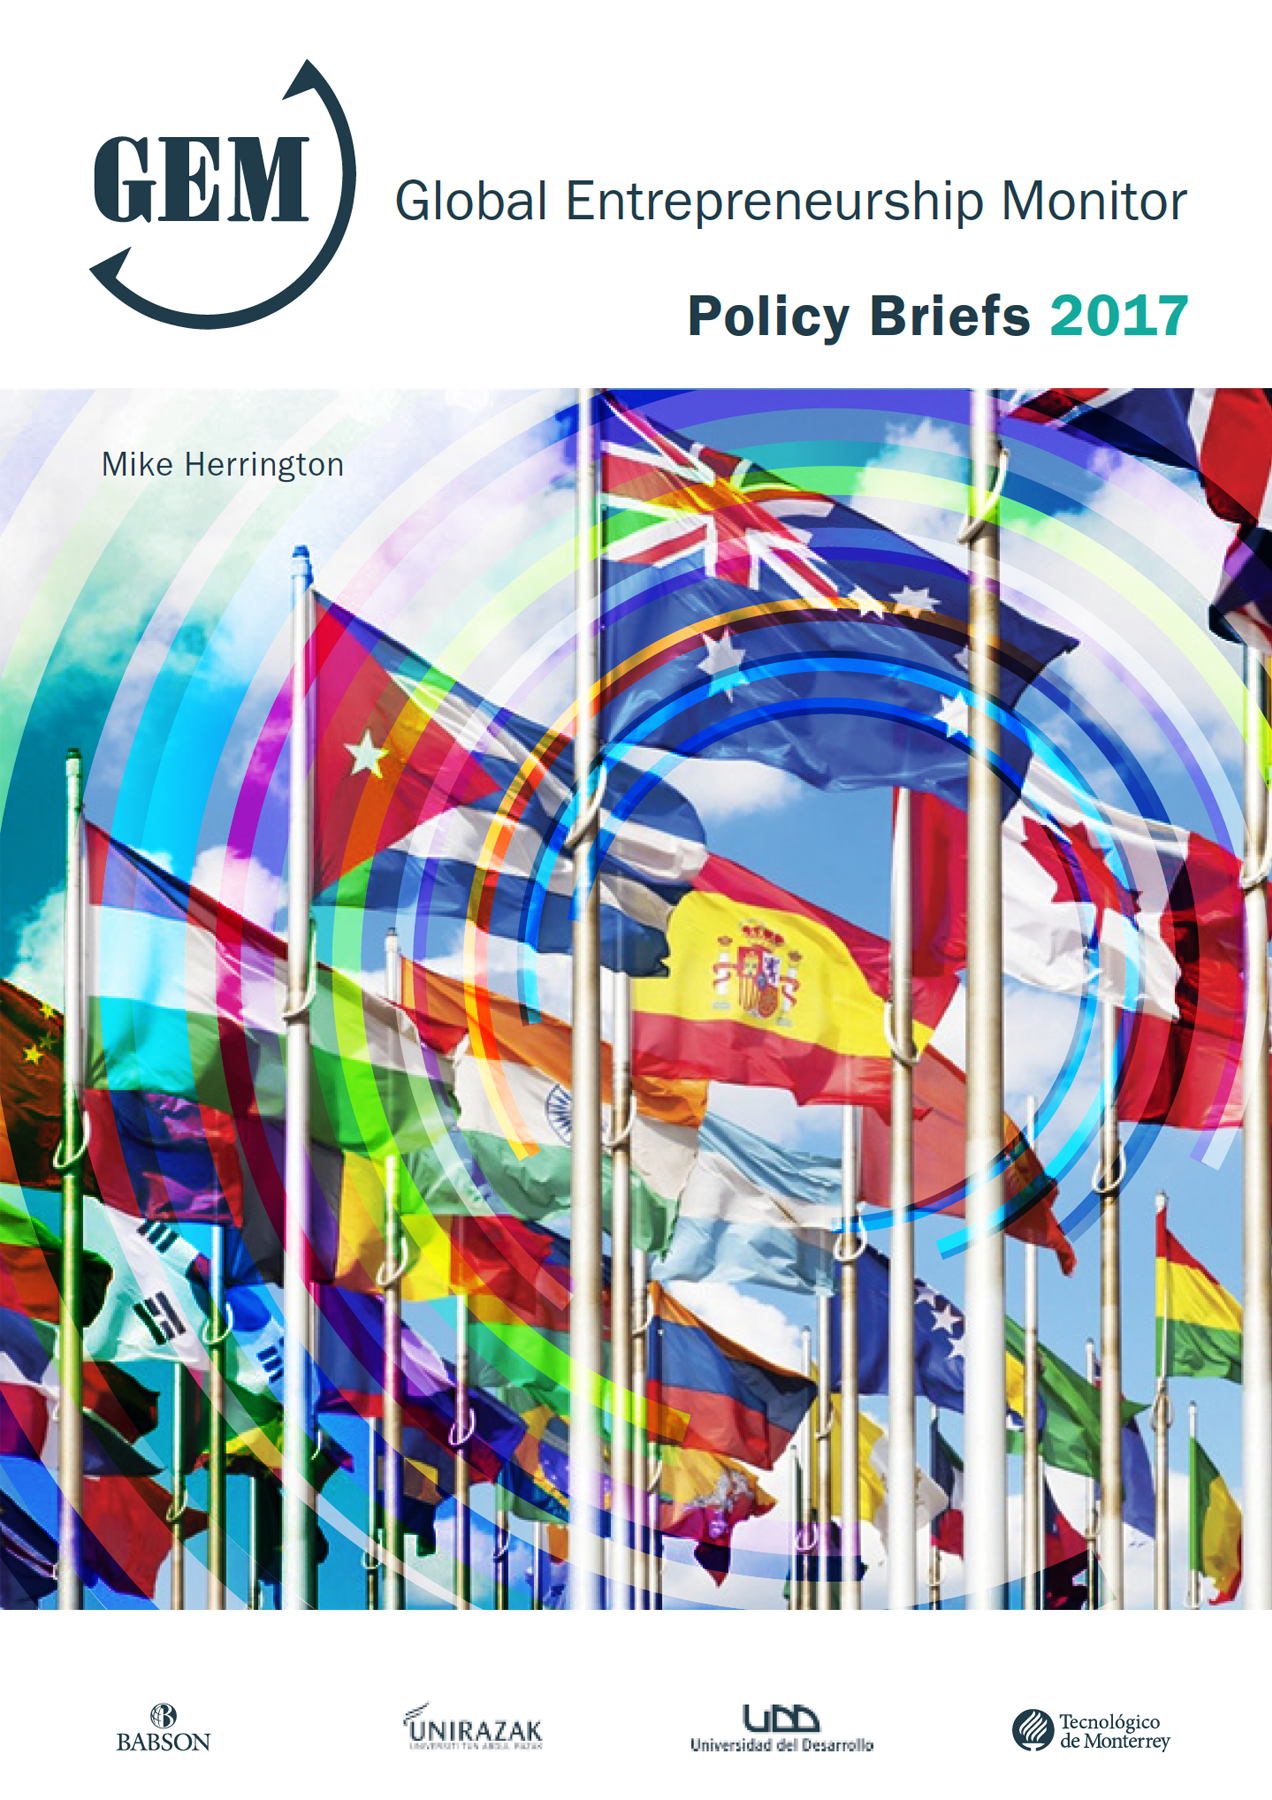 GEM - Policy Briefs 2017